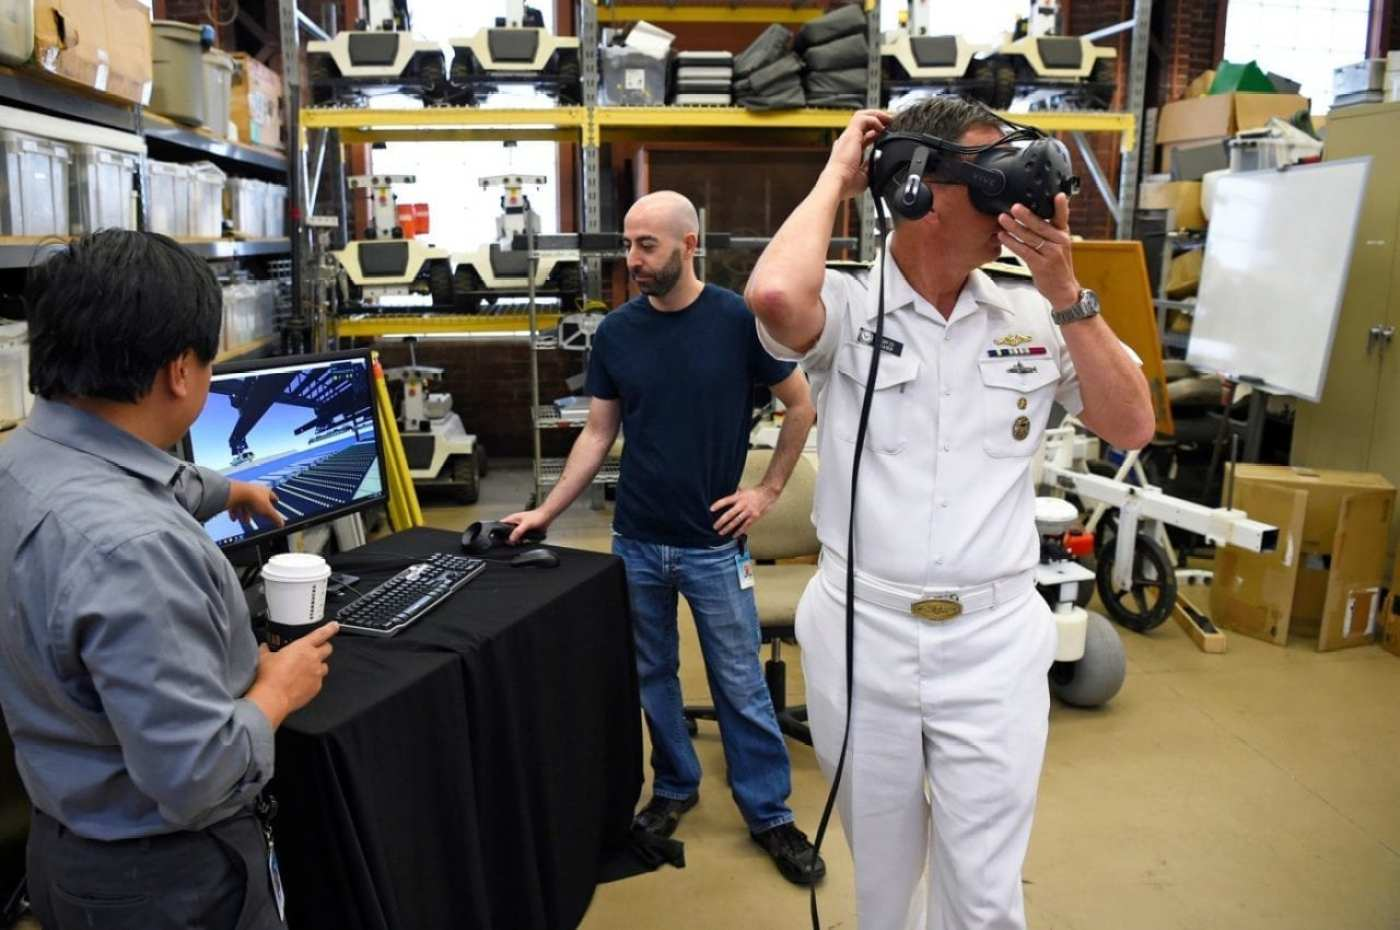 Rear Adm. David Hahn tours the National Robotics Engineering Center (NREC) during a visit to Carnegie Mellon University (CMU) in Pittsburgh, Pennsylvania. Hahn was at CMU to attend the Artificial Intelligence (AI) & Autonomy for Humanitarian Assistance and Disaster Relief (HADR) workshop, co-hosted by the Office of Naval Research and CMU.